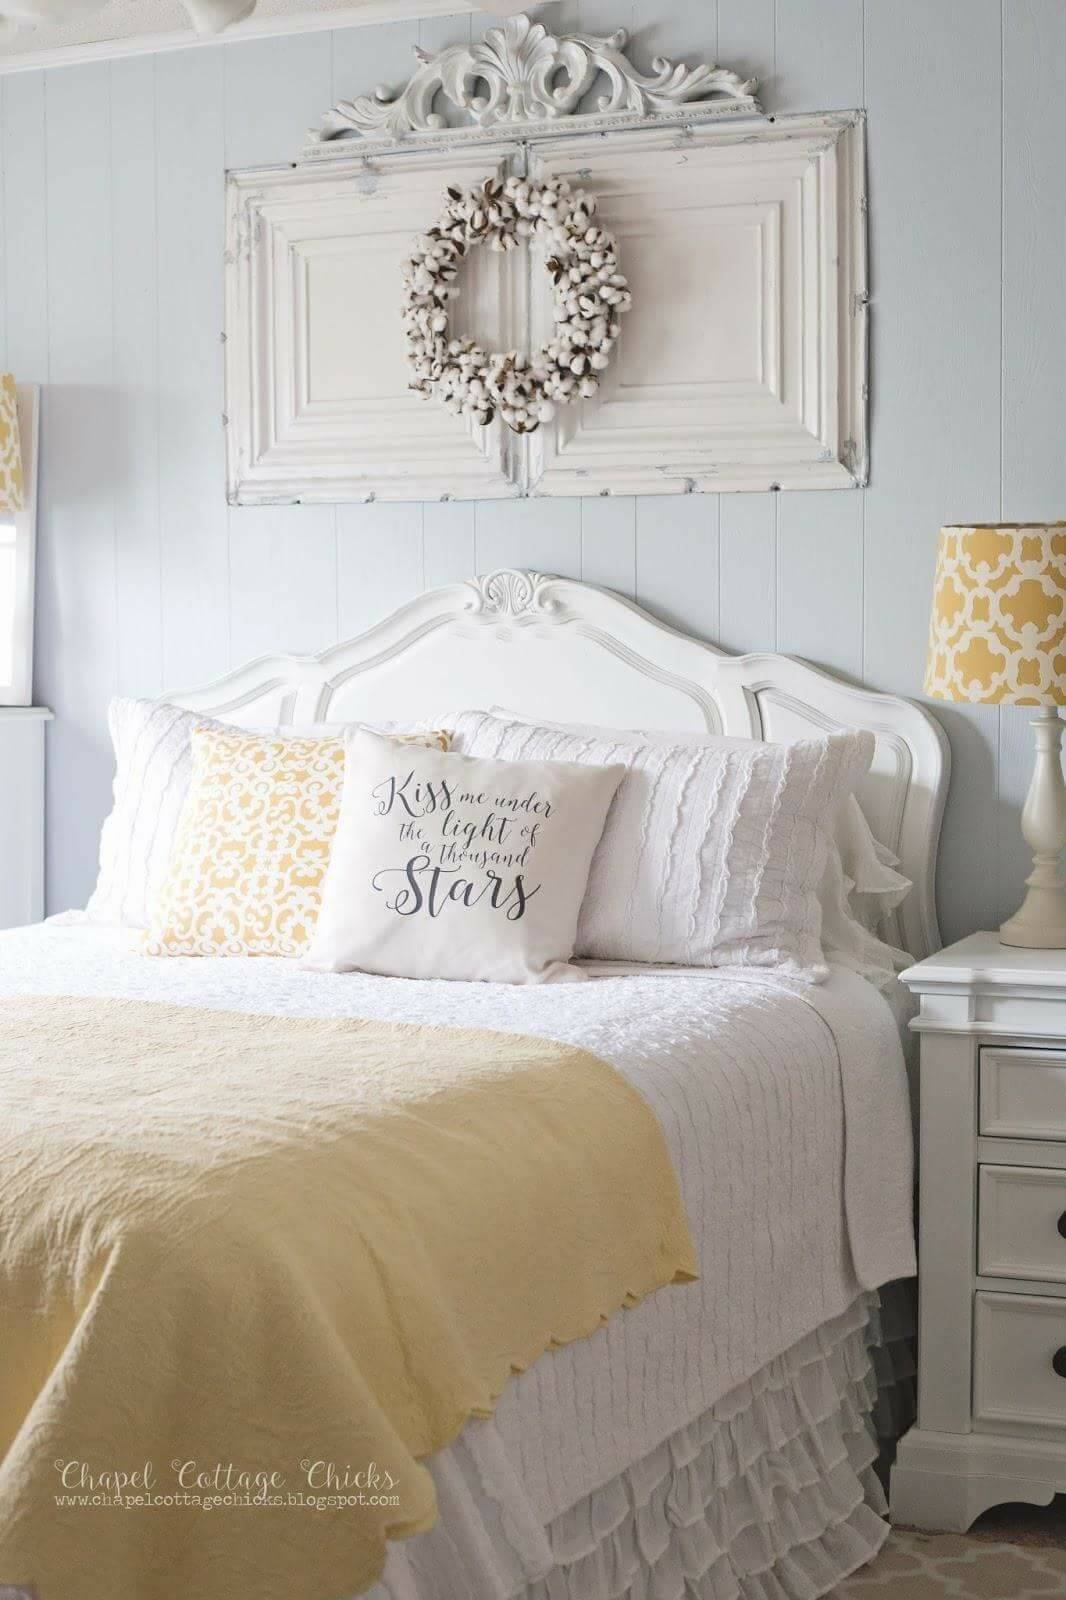 Best 14 Best Rustic Chic Bedroom Decor And Design Ideas For 2019 This Month